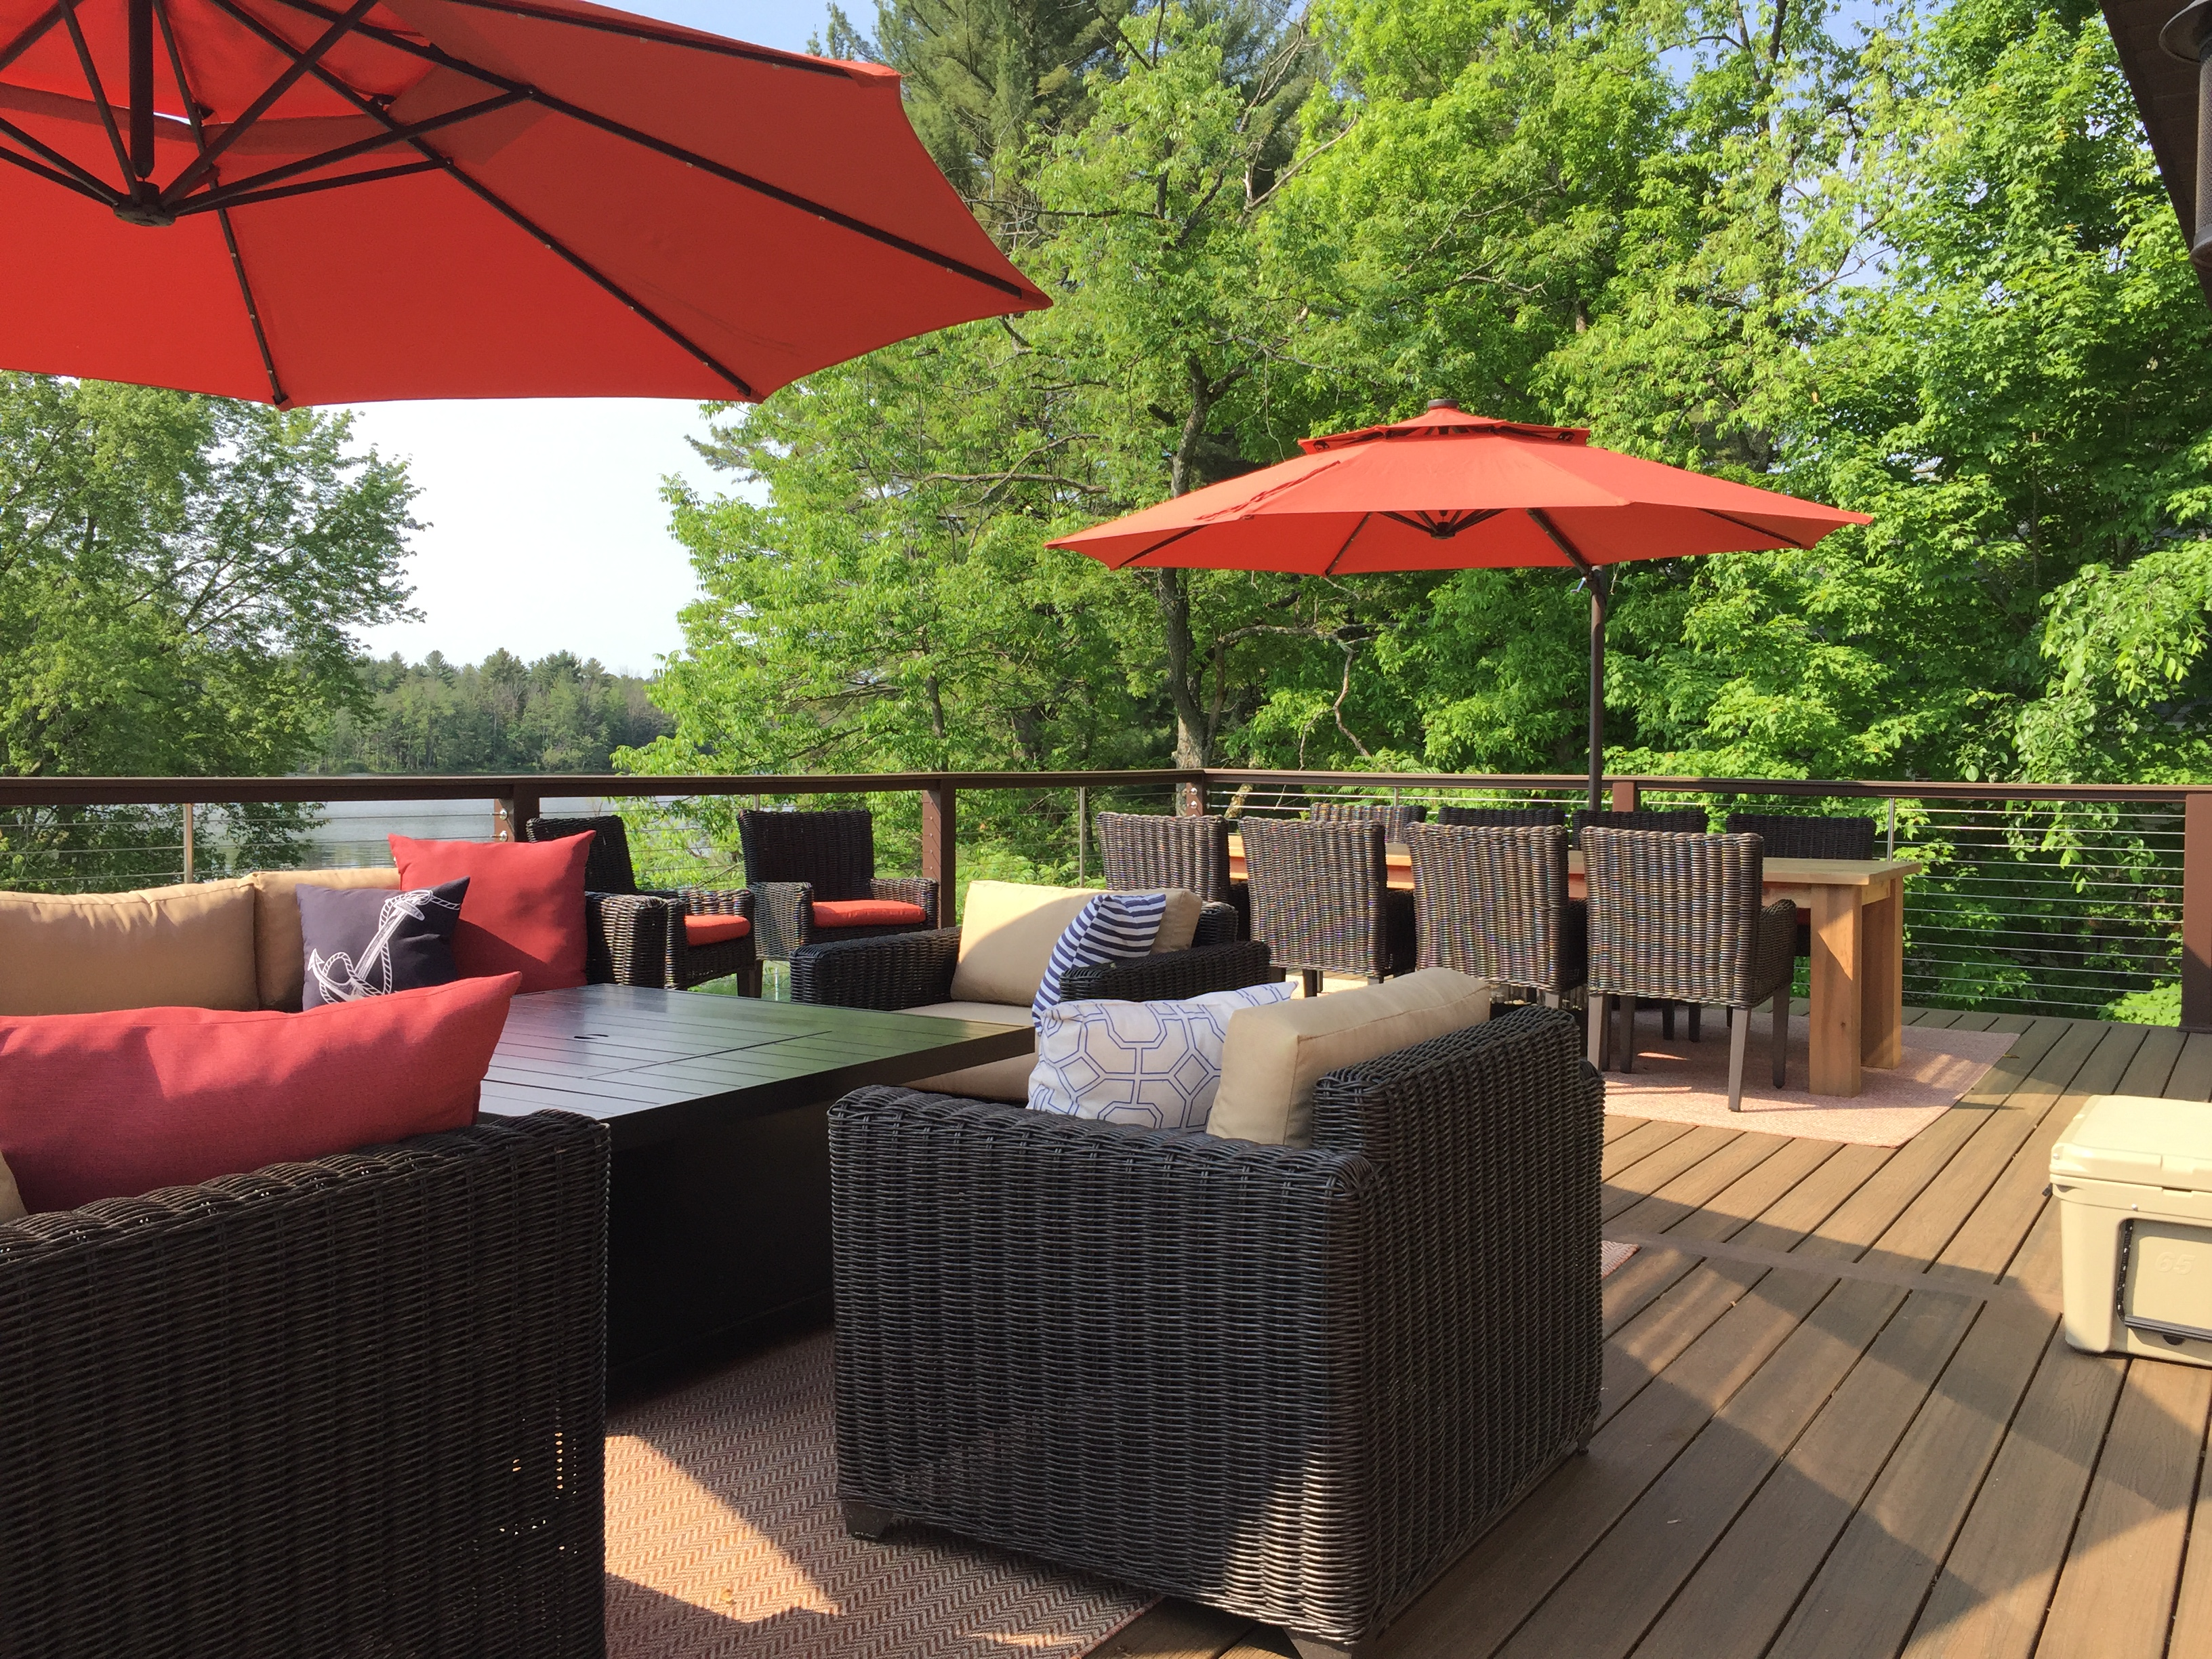 Outdoor Living | Patriot Construction of Upstate New York ... on Patriot Outdoor Living id=74217